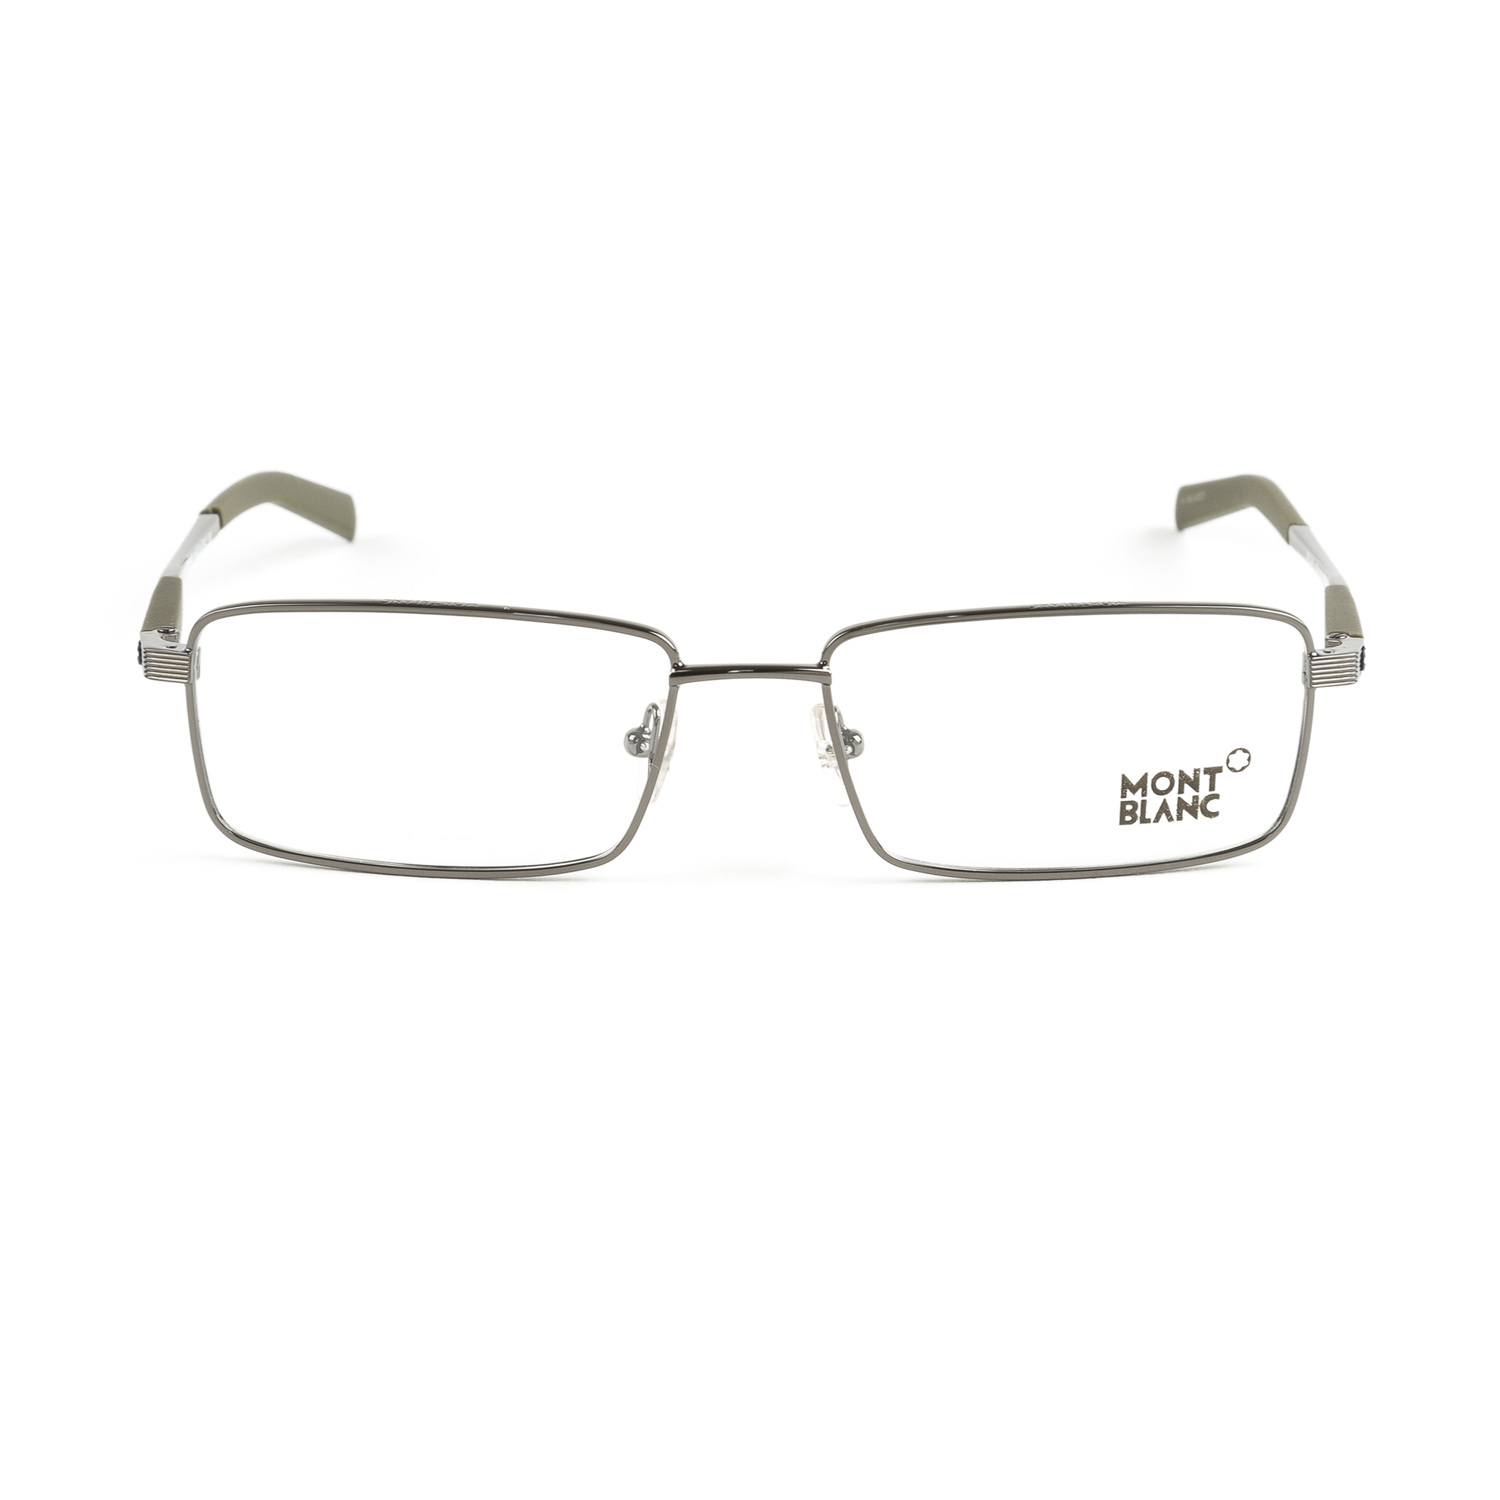 Montblanc Rectangular Metal Eyeglass Frames 55mm MB340 NEW ...